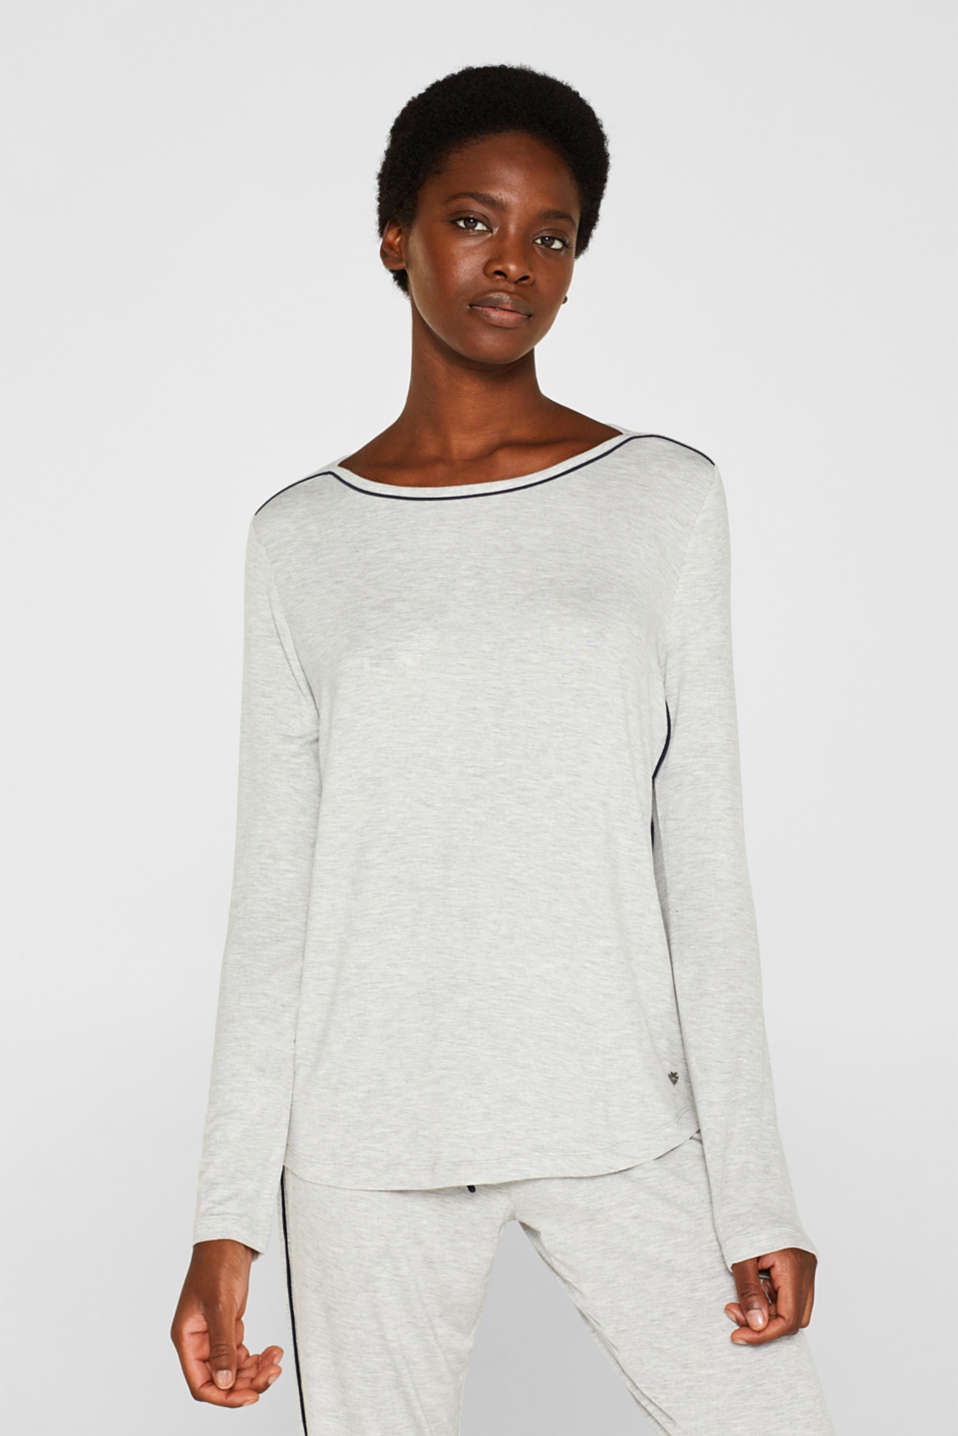 LIGHT GREY melange long sleeve top, LIGHT GREY, detail image number 1